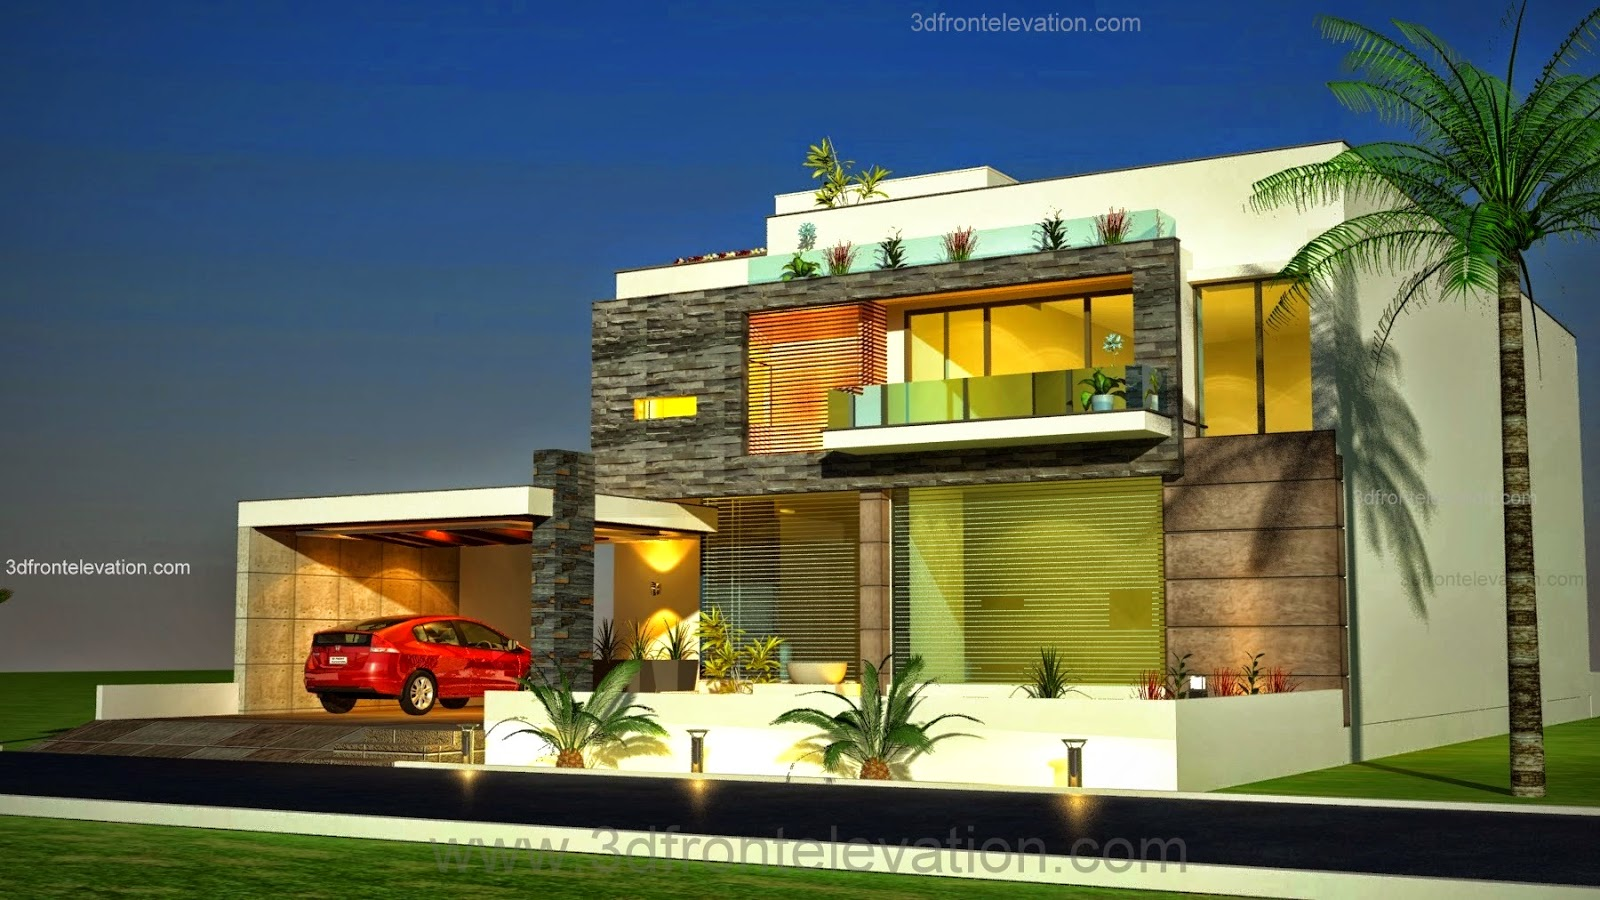 3d front 1 kanal plot new beautiful modern contemporary house design 3d front - Home decorating services plan ...